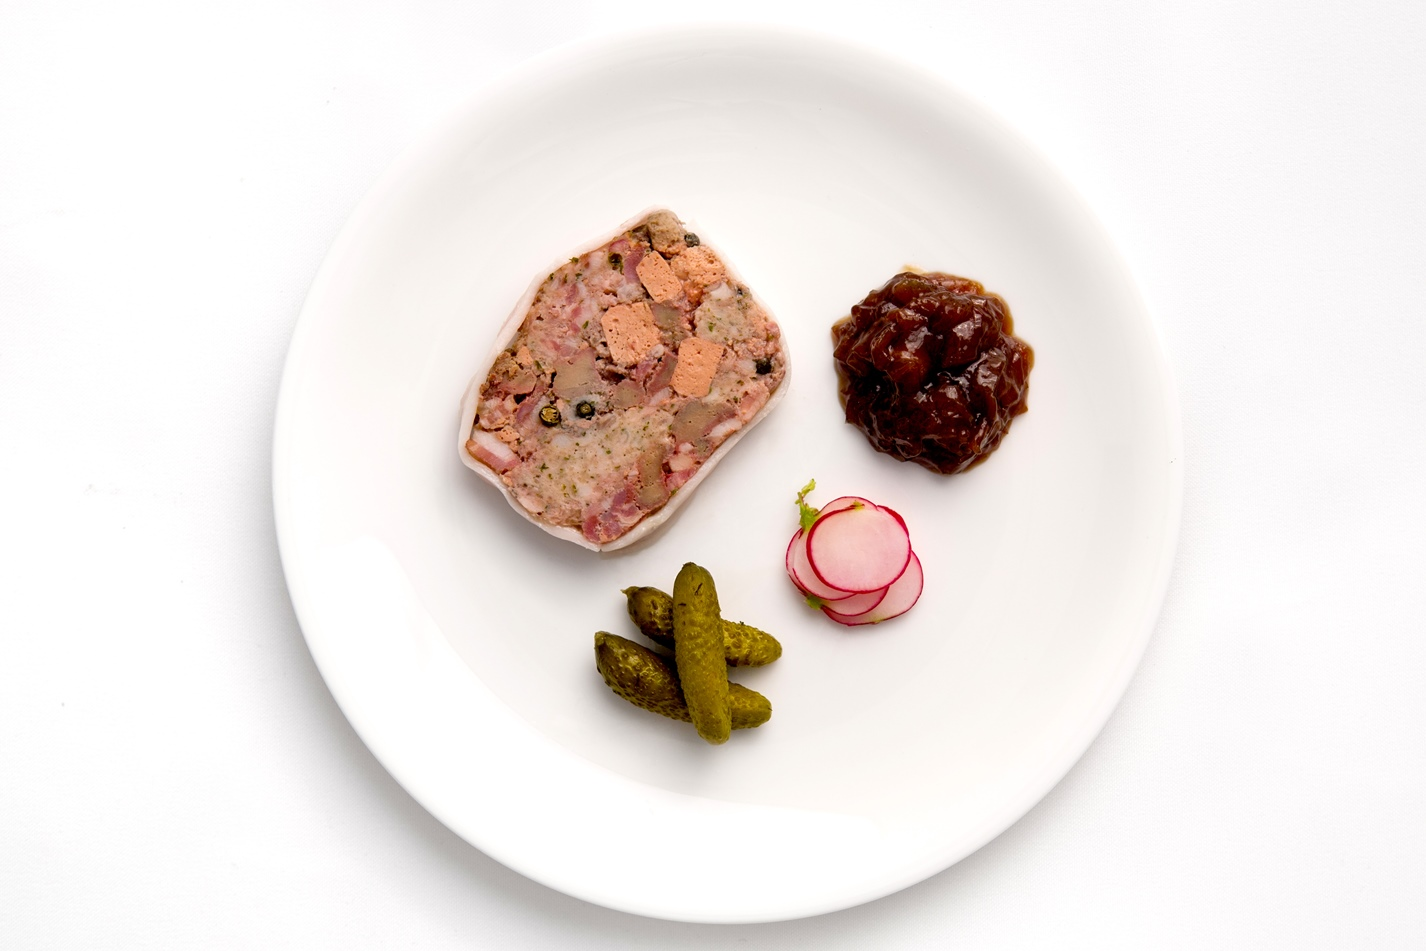 Terrine of calves liver